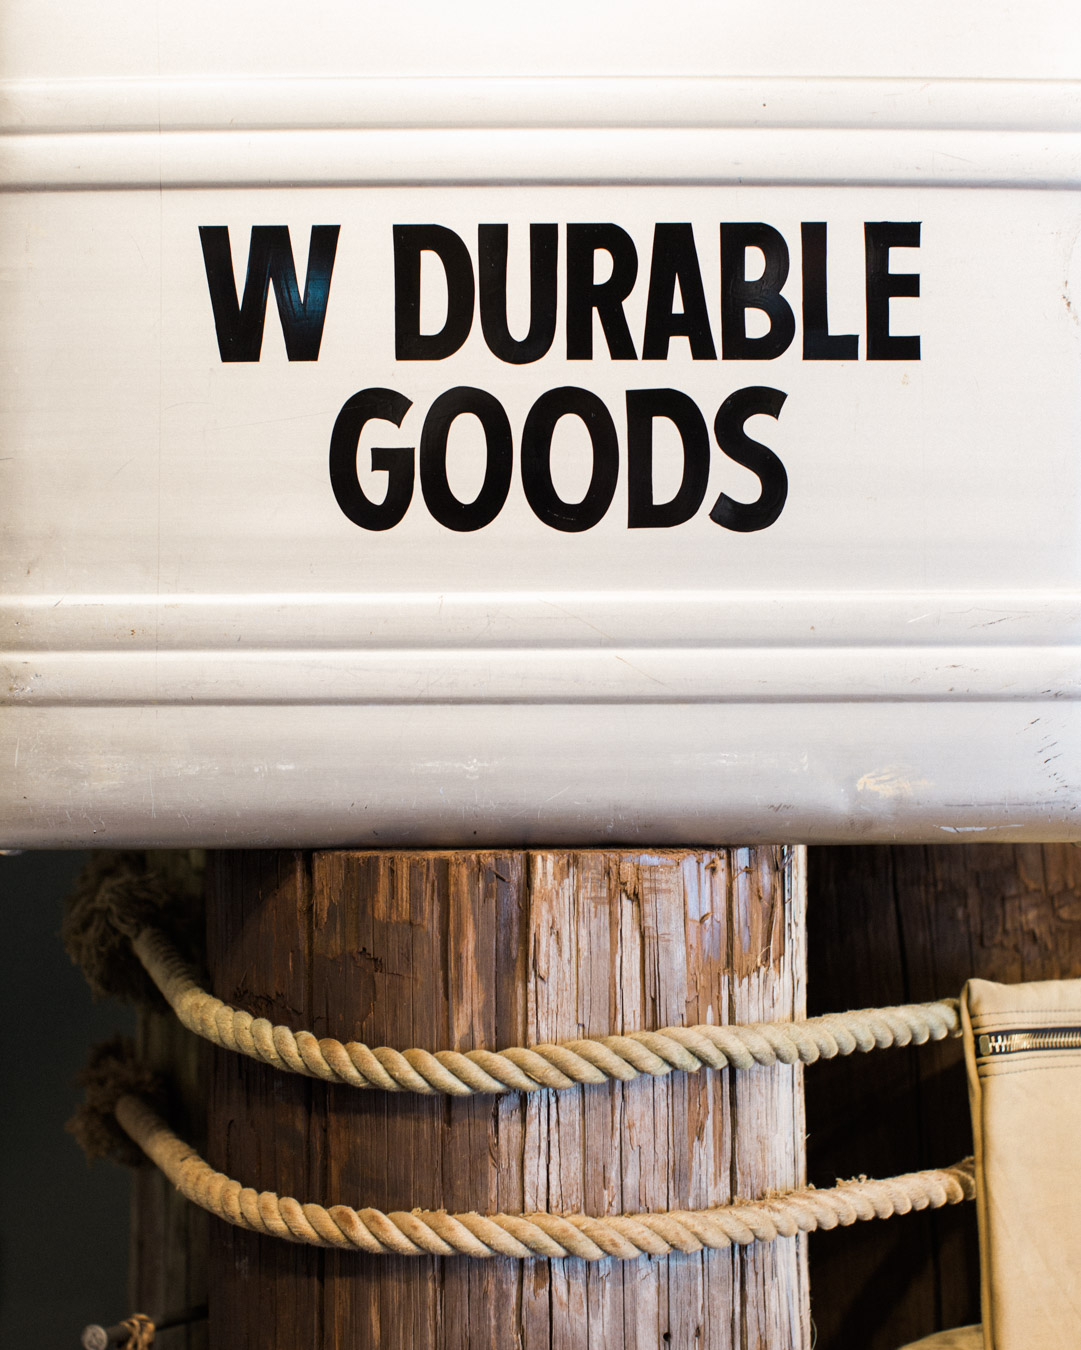 W Durable Goods  (18 of 95).jpg